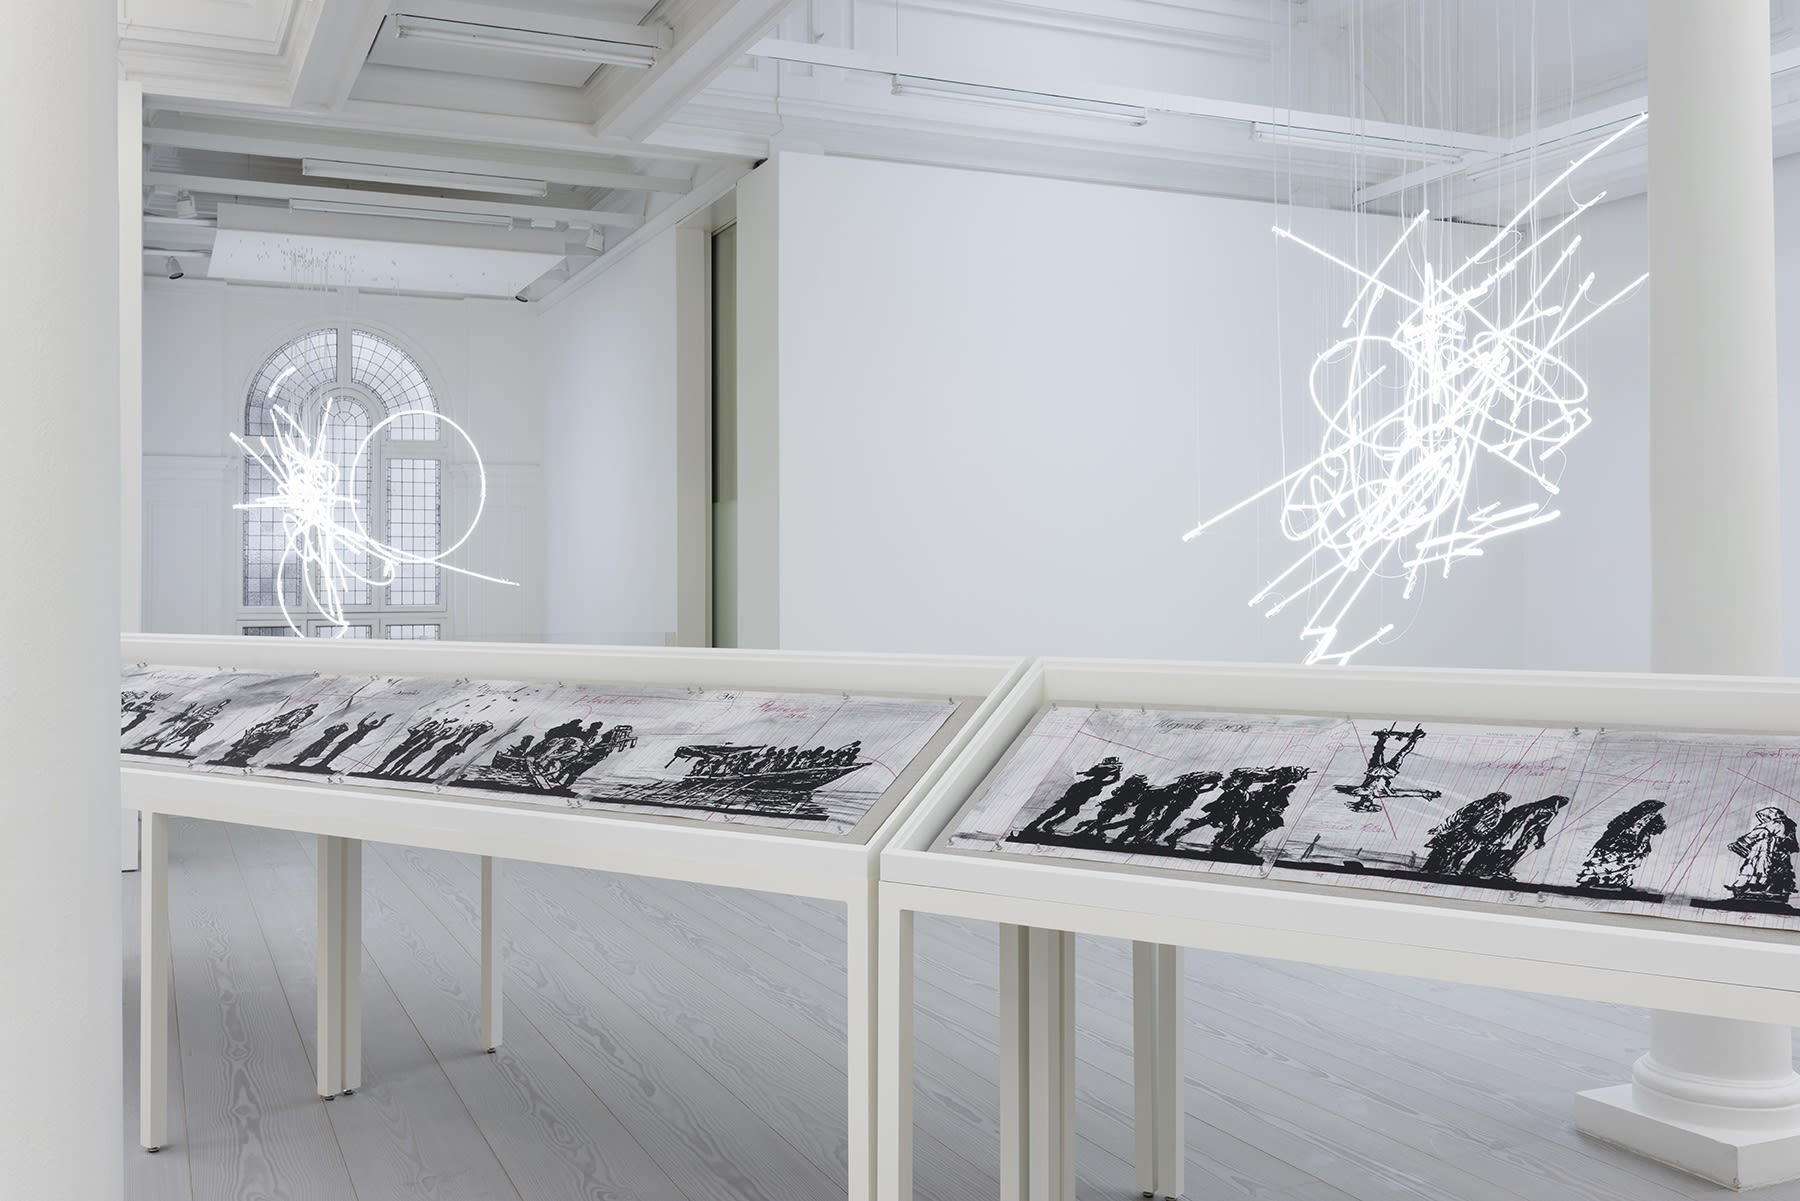 A long vitrine displaying charcoal drawings sits under a neon sculpture hanging from the ceiling.